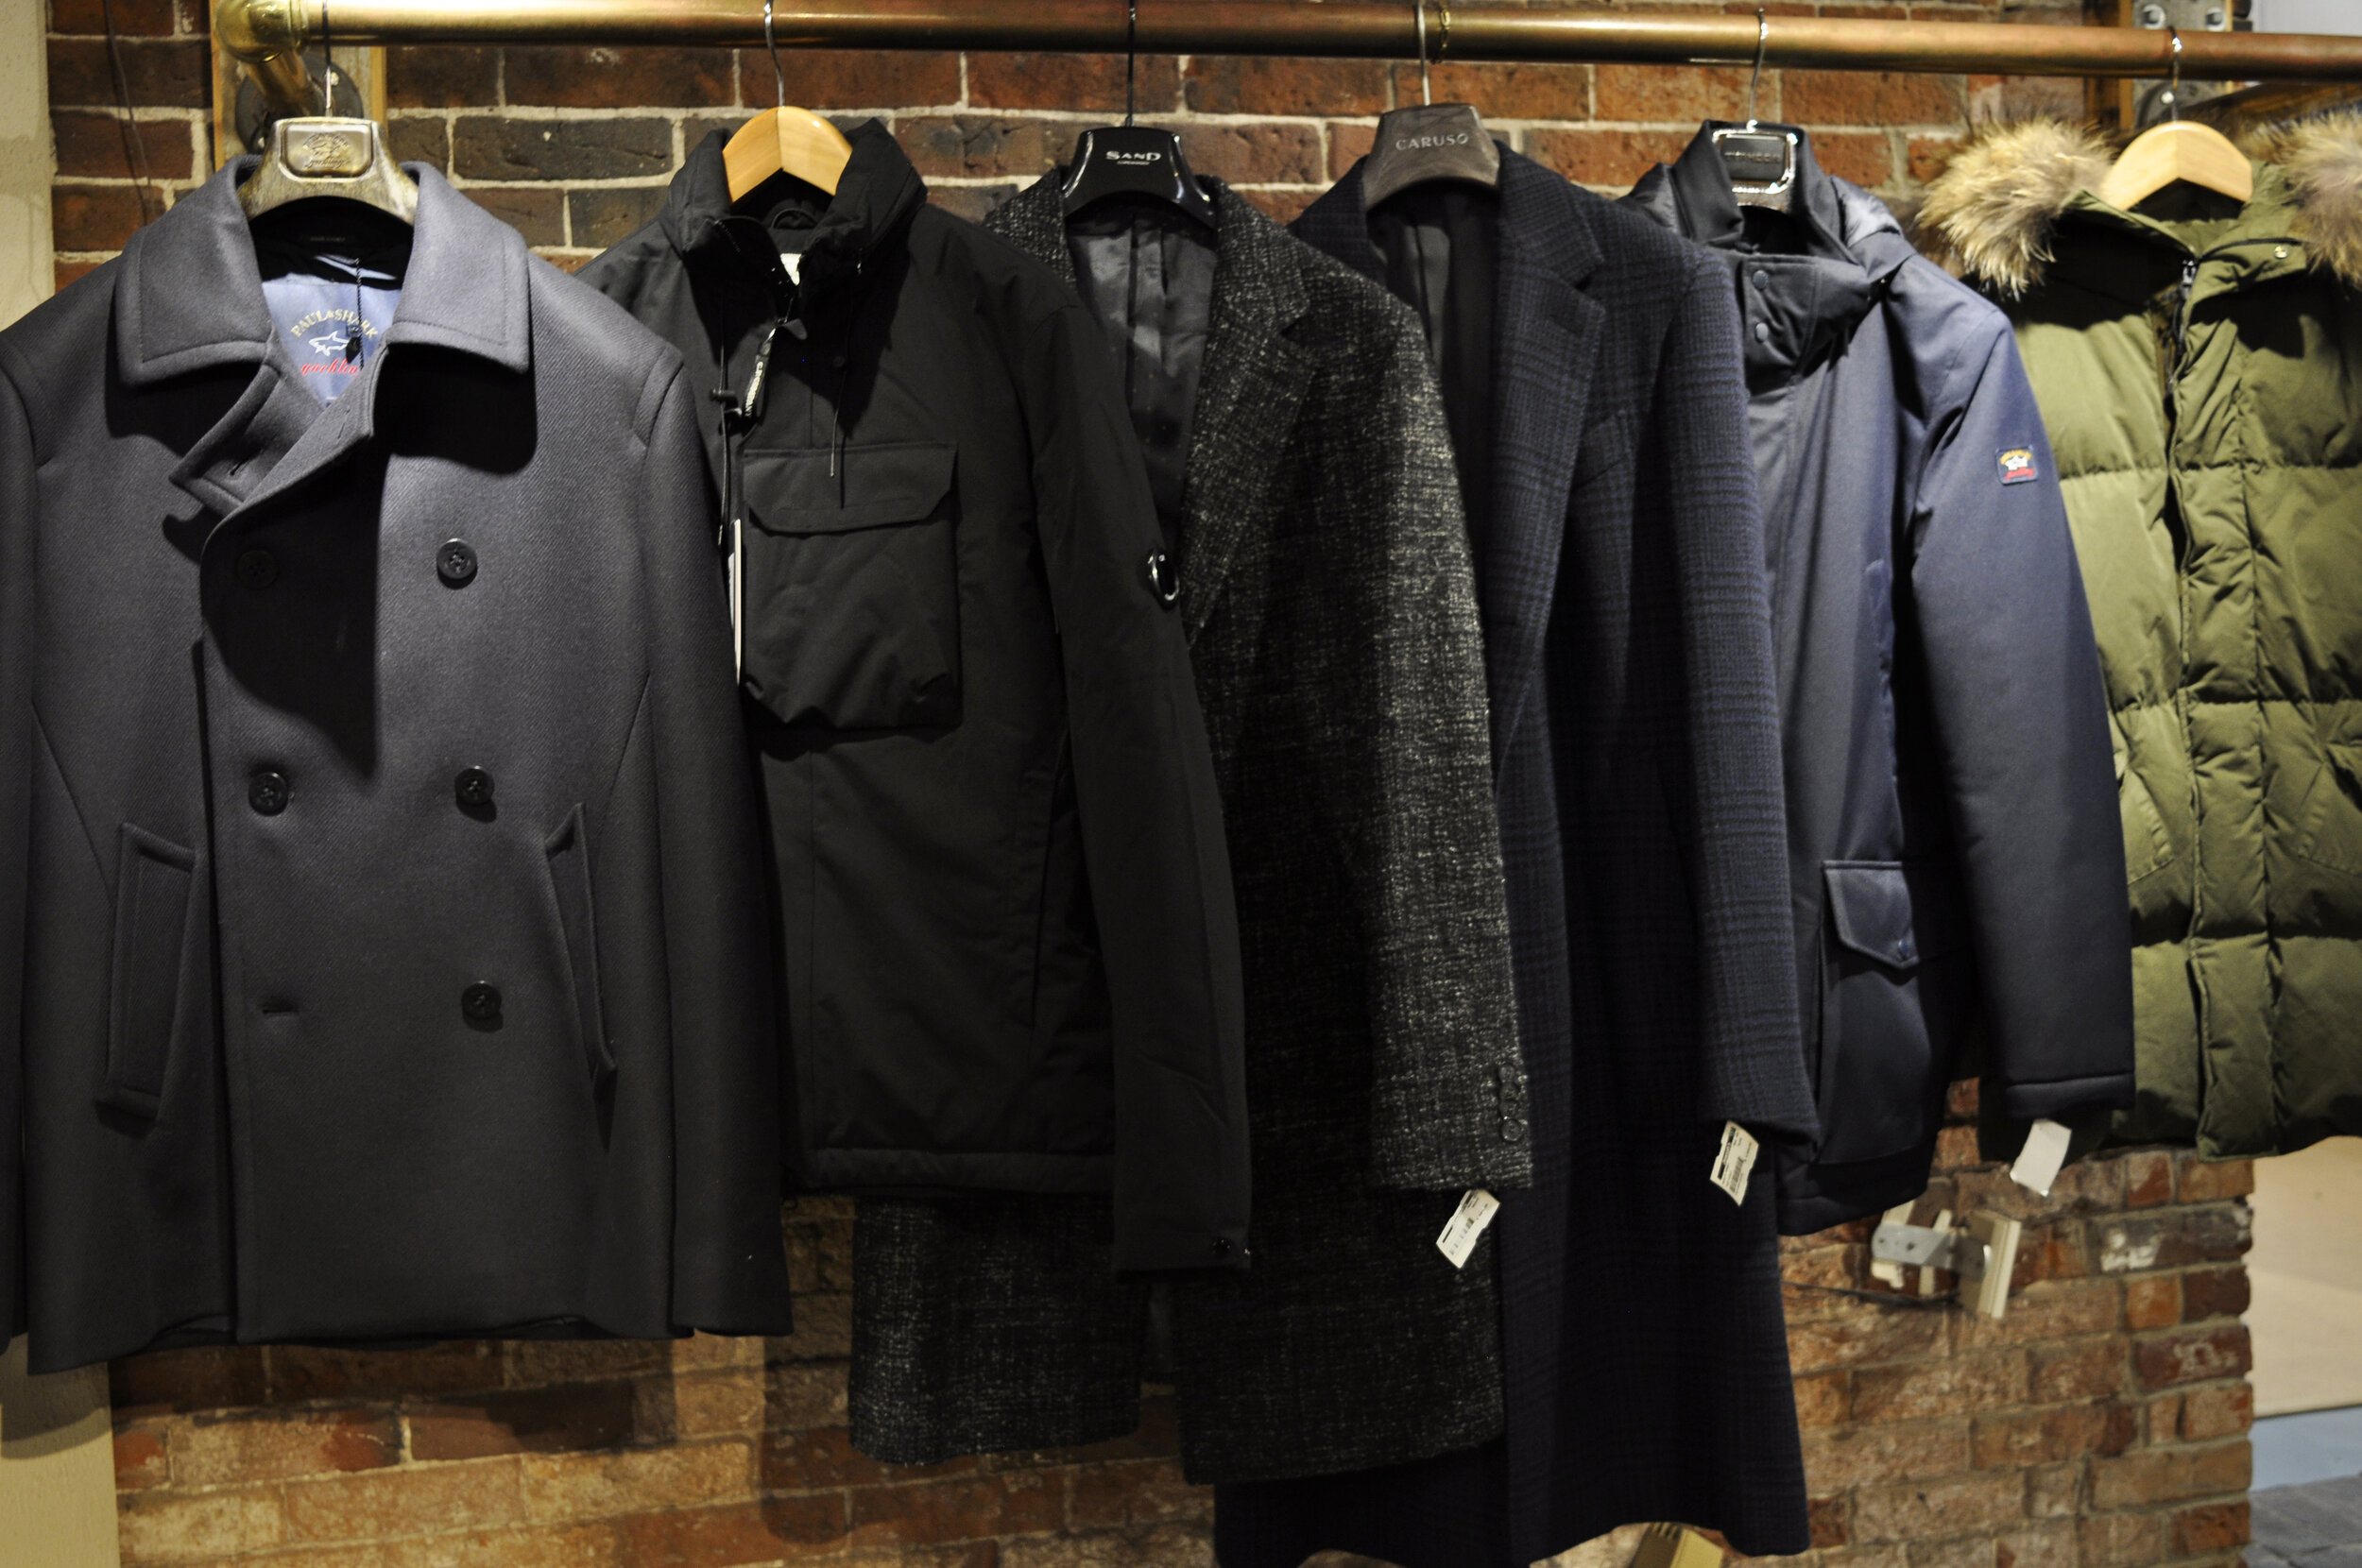 Some of our Fall Outerwear: L-R Paul & Shark, CP Company, Sand, Caruso, Paul & Shark, CP Company